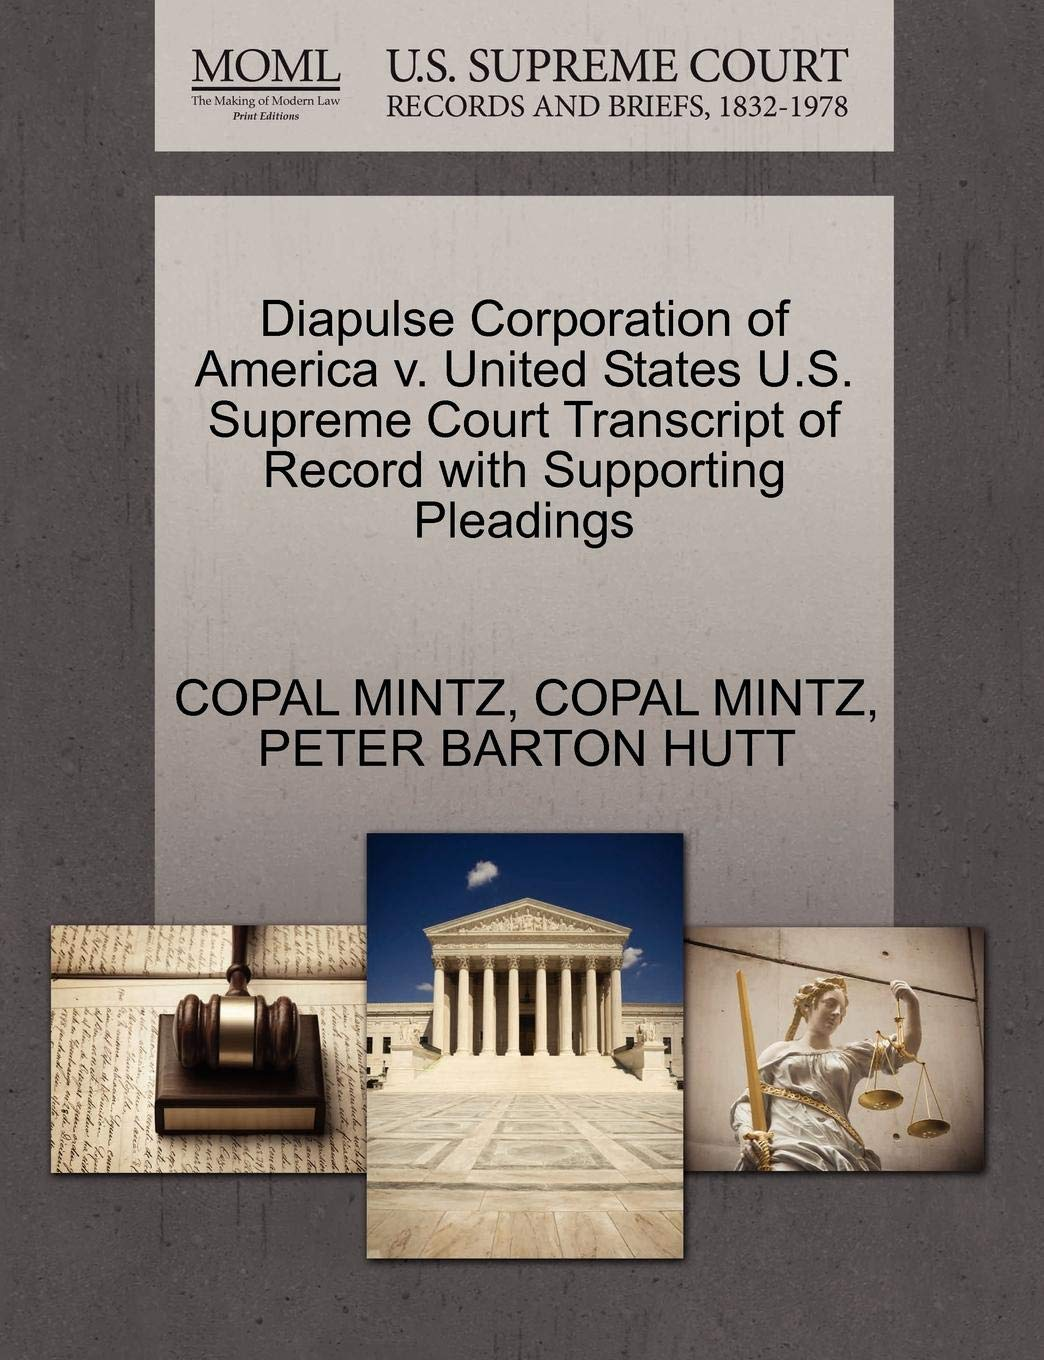 Diapulse Corporation of America v. United States U.S. Supreme Court Transcript of Record with Supporting Pleadings by Gale, U.S. Supreme Court Records